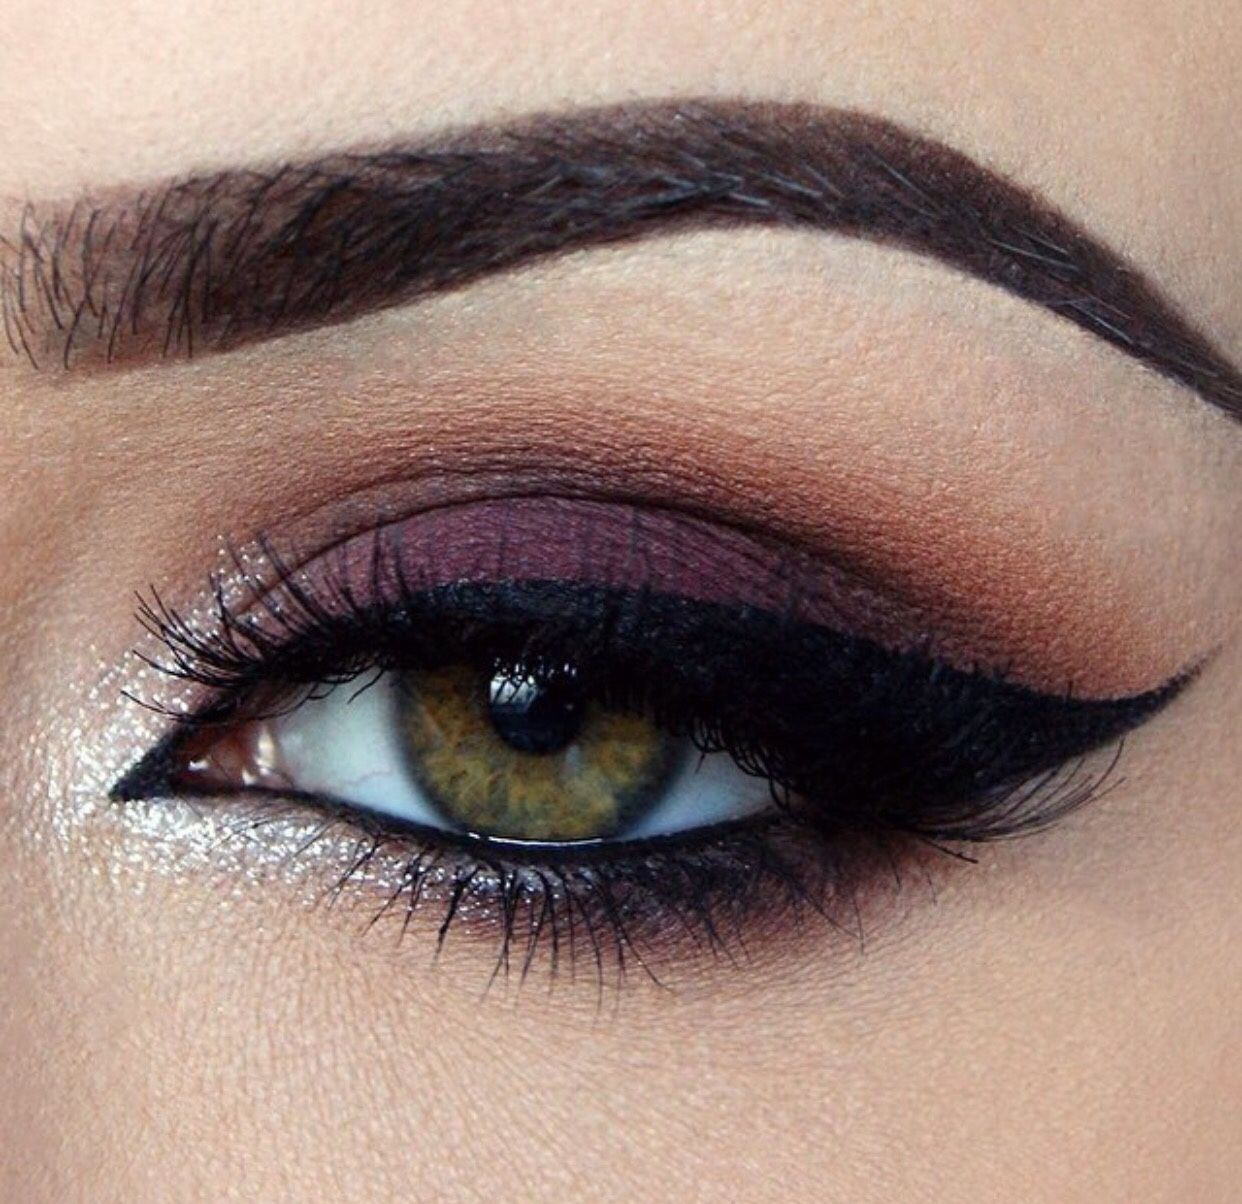 Eye Makeup Dark Purple Eye Shadow Strong Dark Eyeliner And White